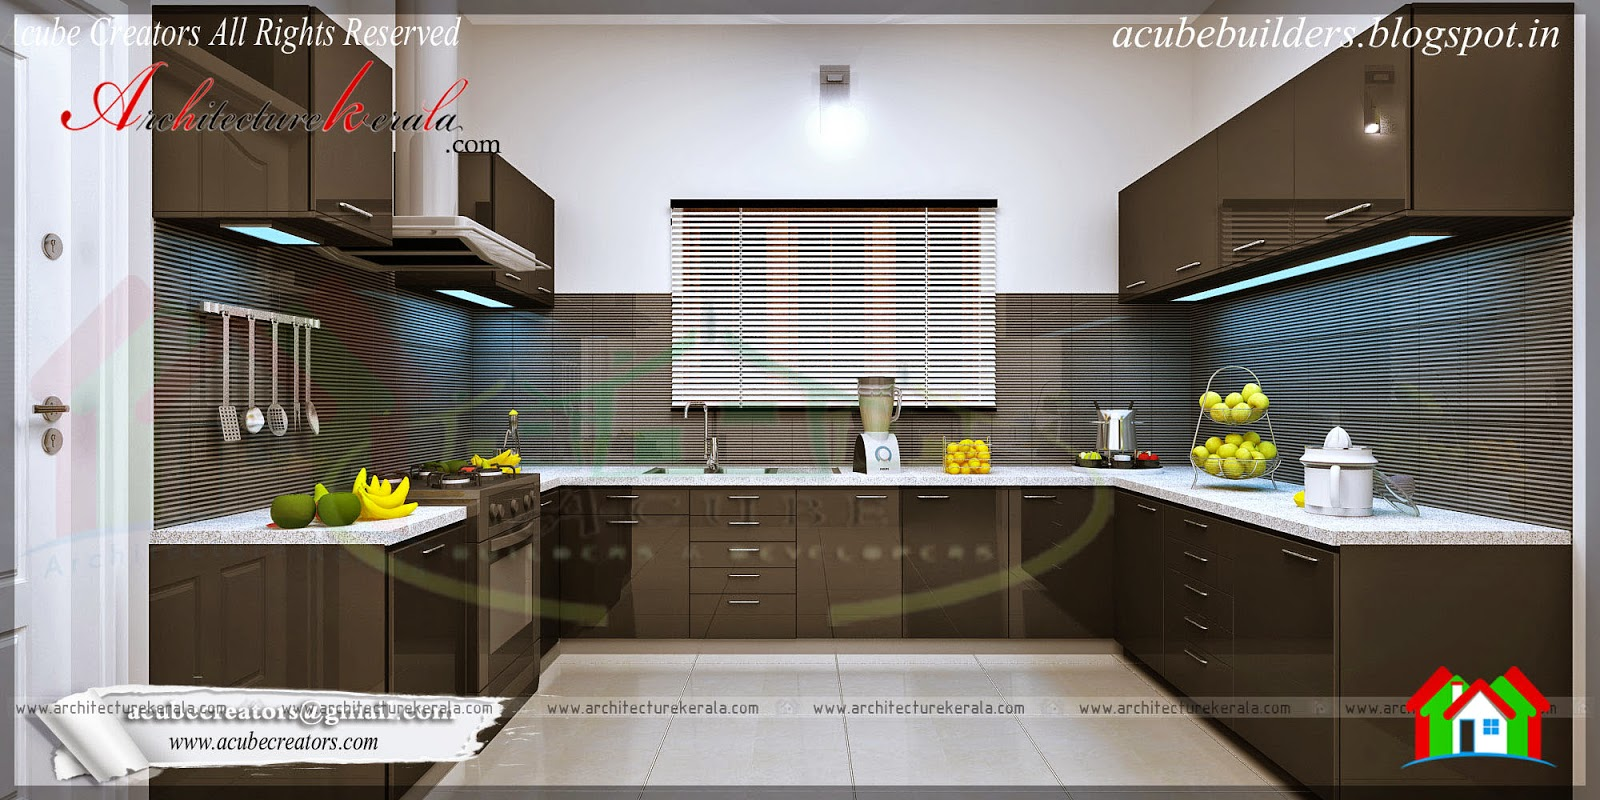 Modern kitchen interior architecture kerala for New kitchen designs in kerala